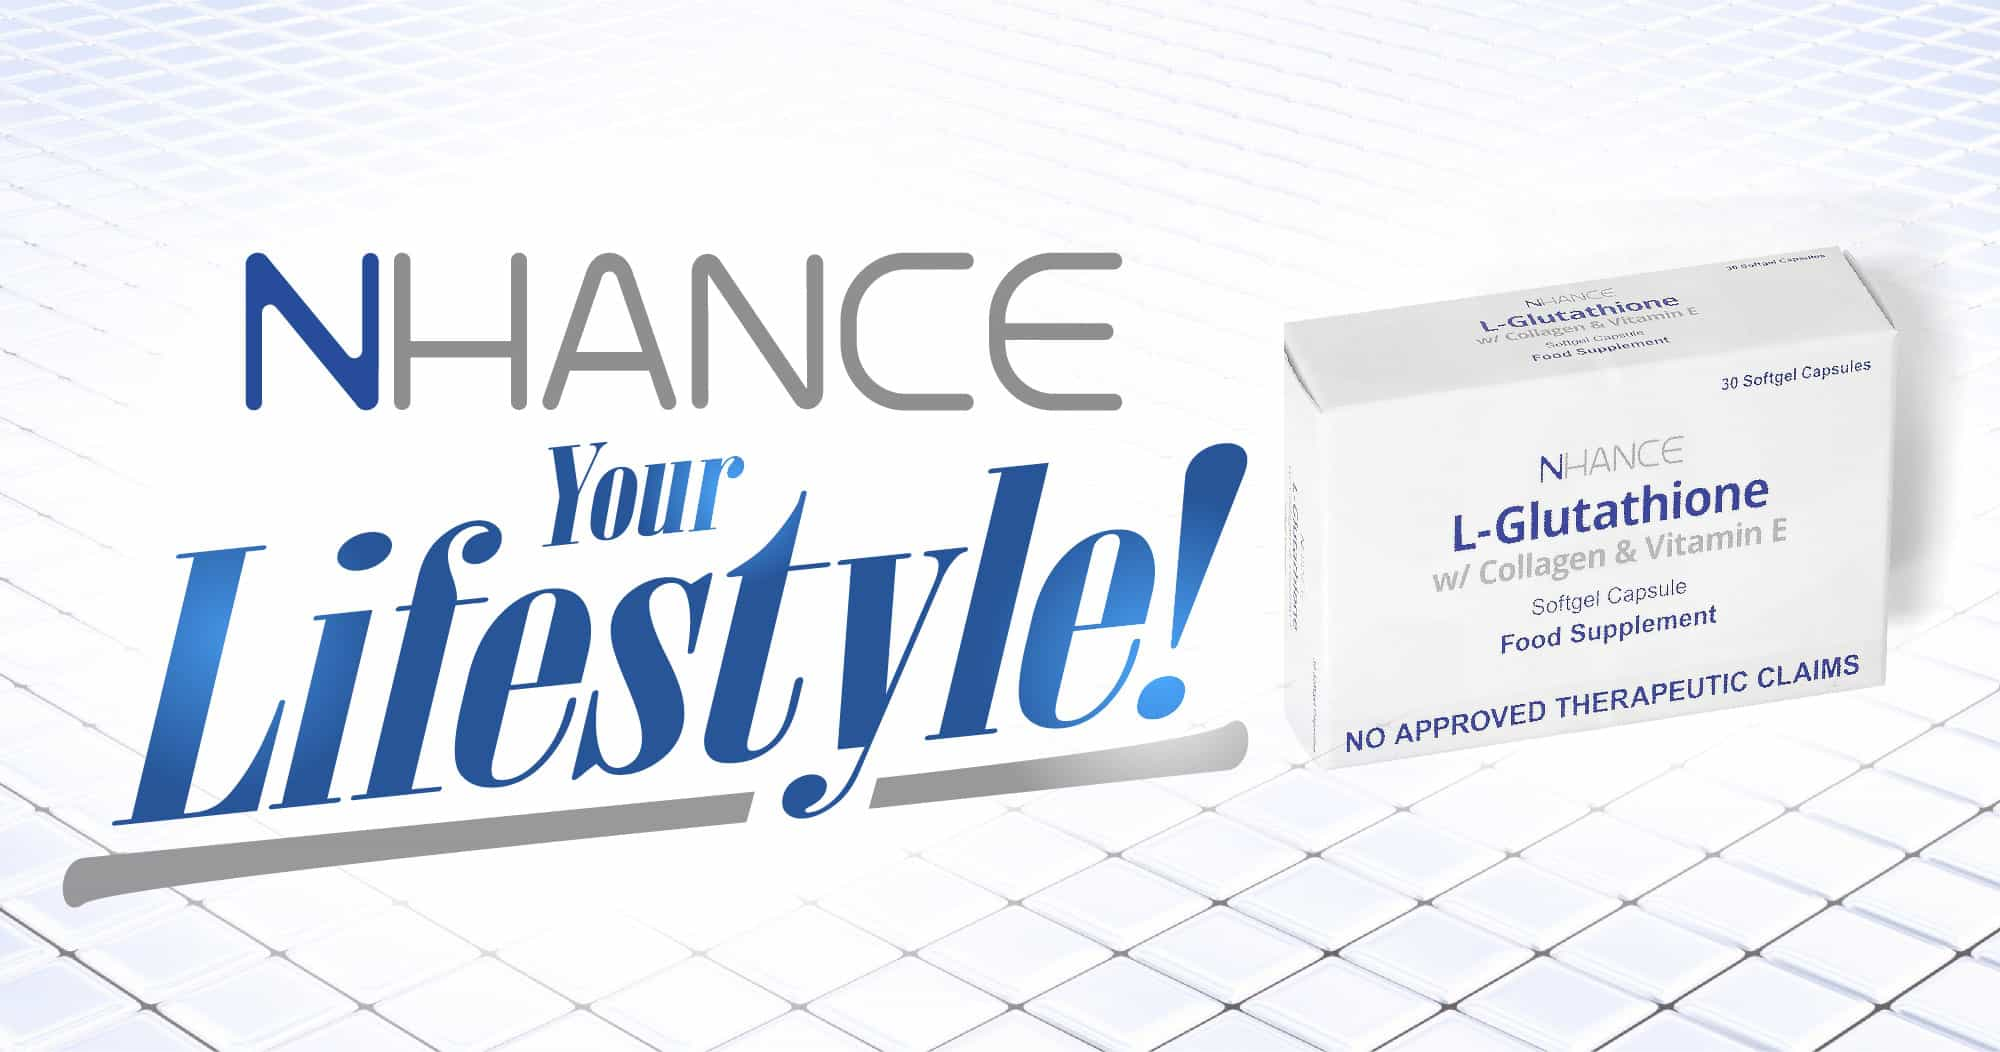 NHANCE YOUR LIFESTYLE! L-Glutathione